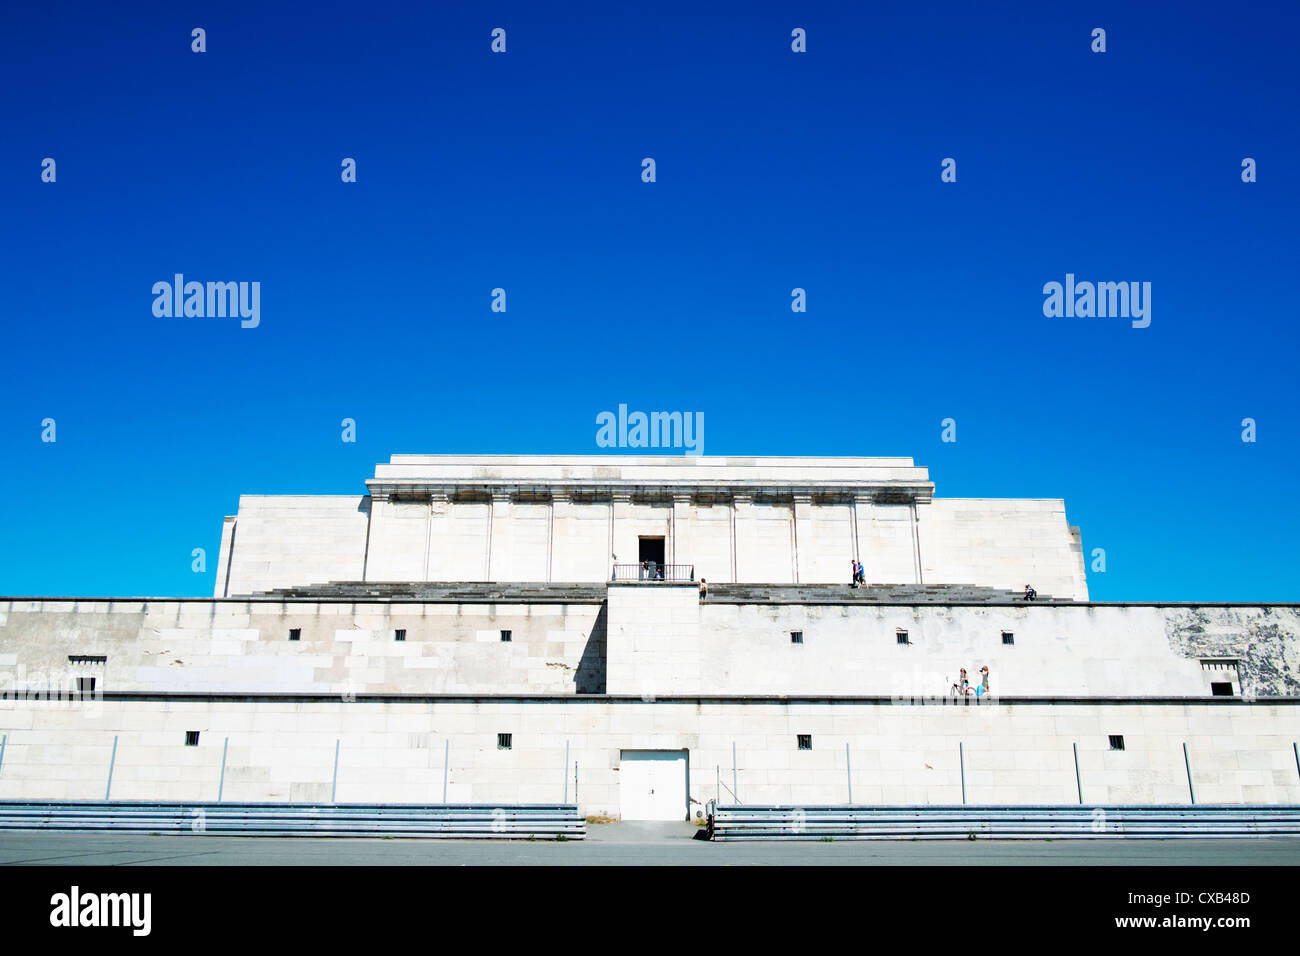 The former grandstand of Nazi party rally gounds at Zeppelinfeld in Nuremberg in Bavaria Germany - Stock Image